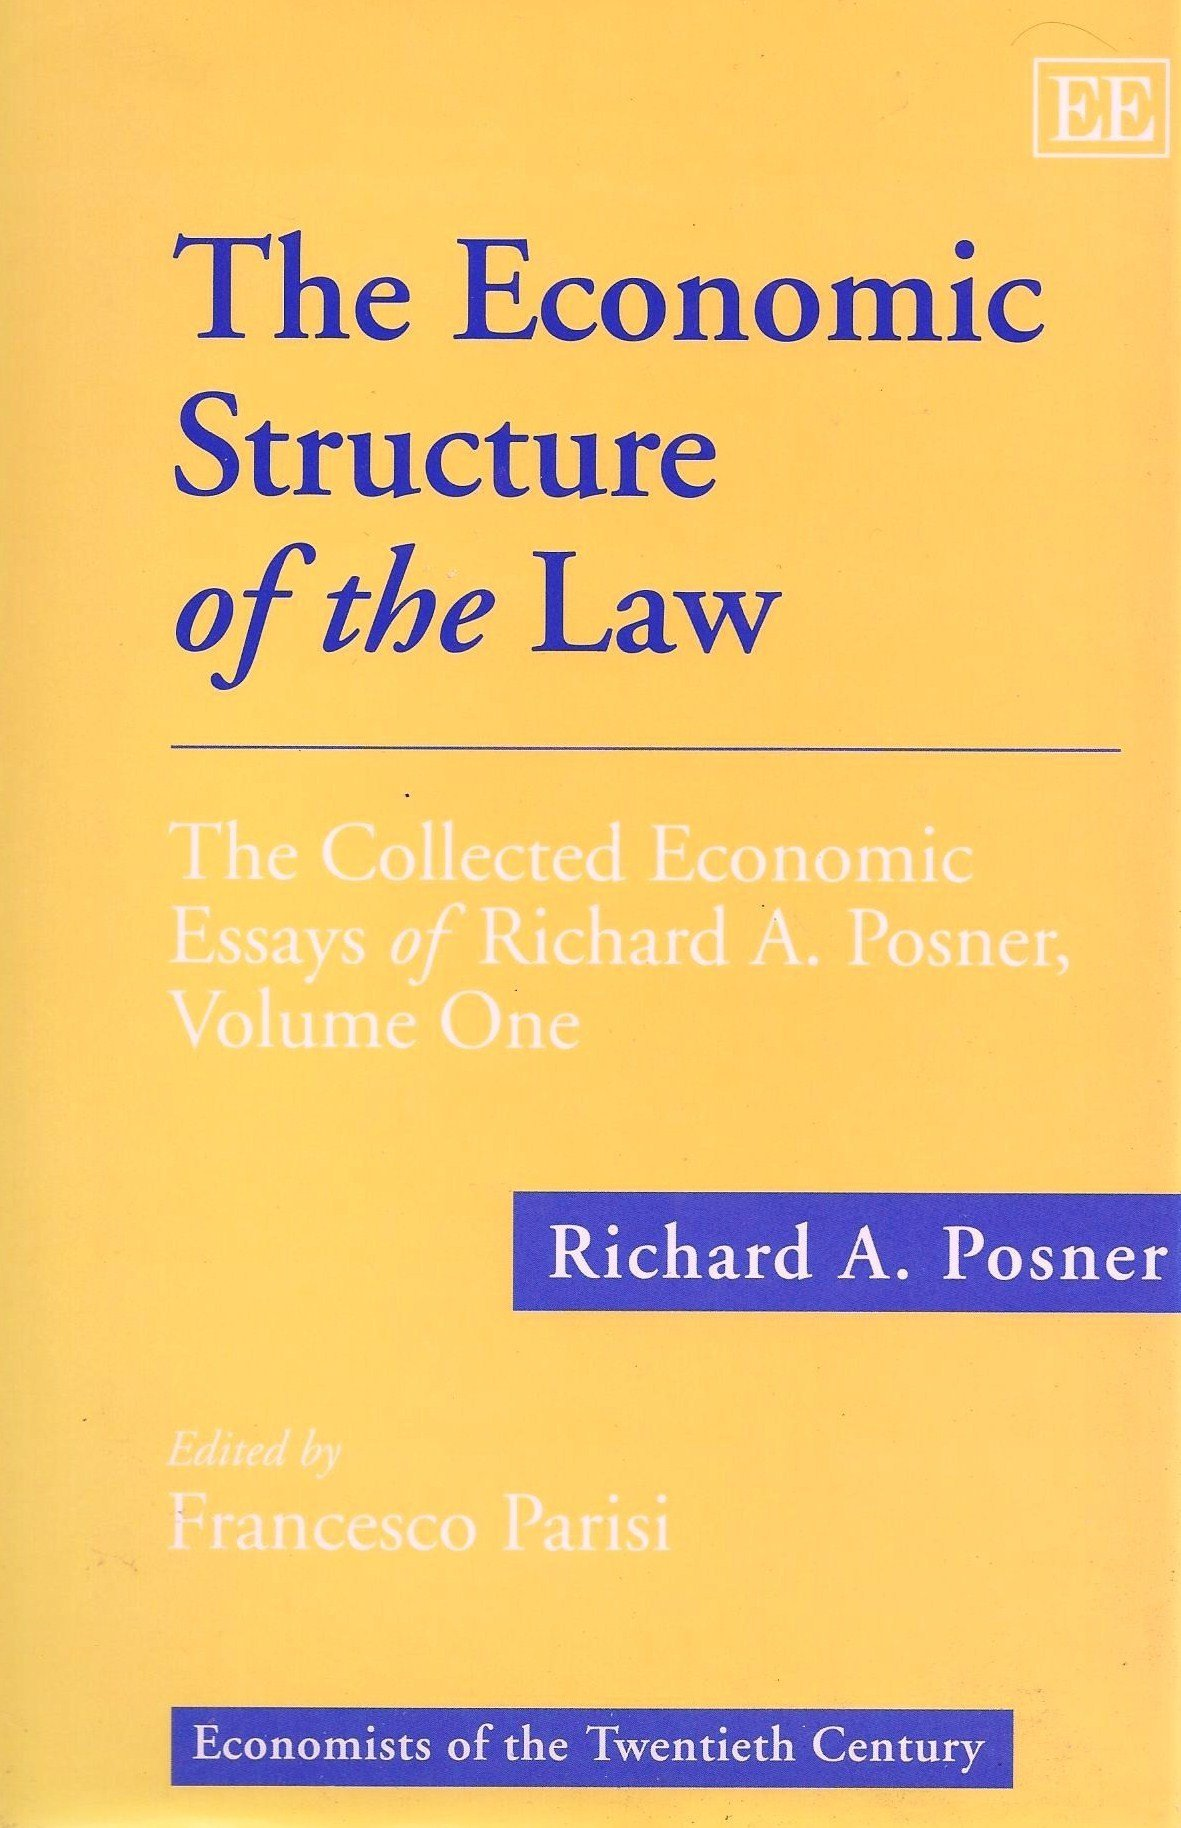 economic essays photo economic essays images economic essays in  the economic structure of the law the collected economic essays the economic structure of the law